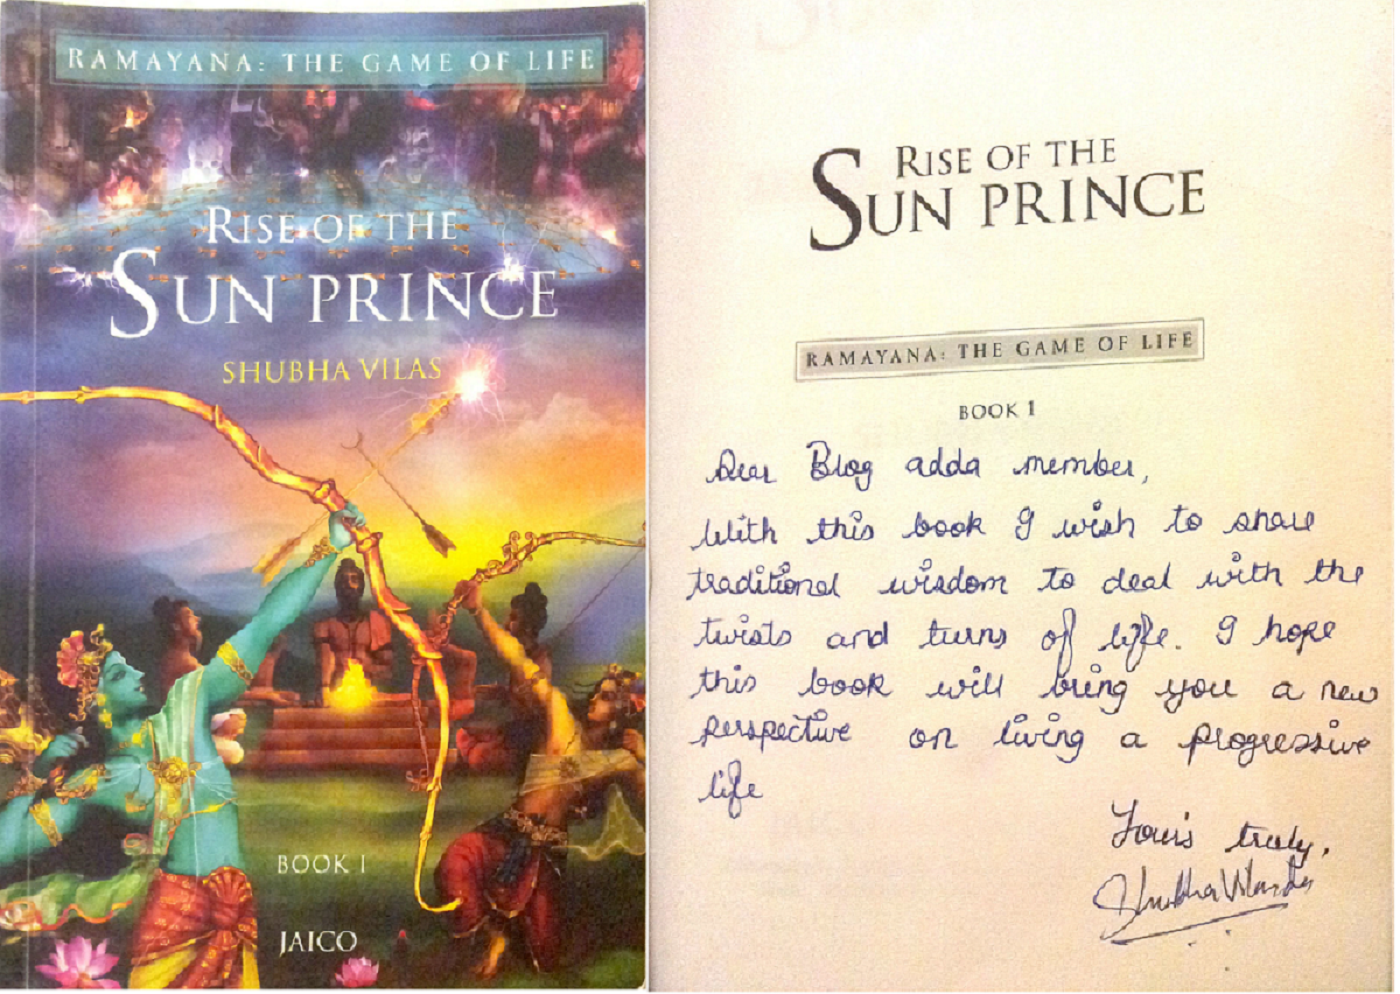 Ramayana : The Game of Life: Rise of the Sun Prince